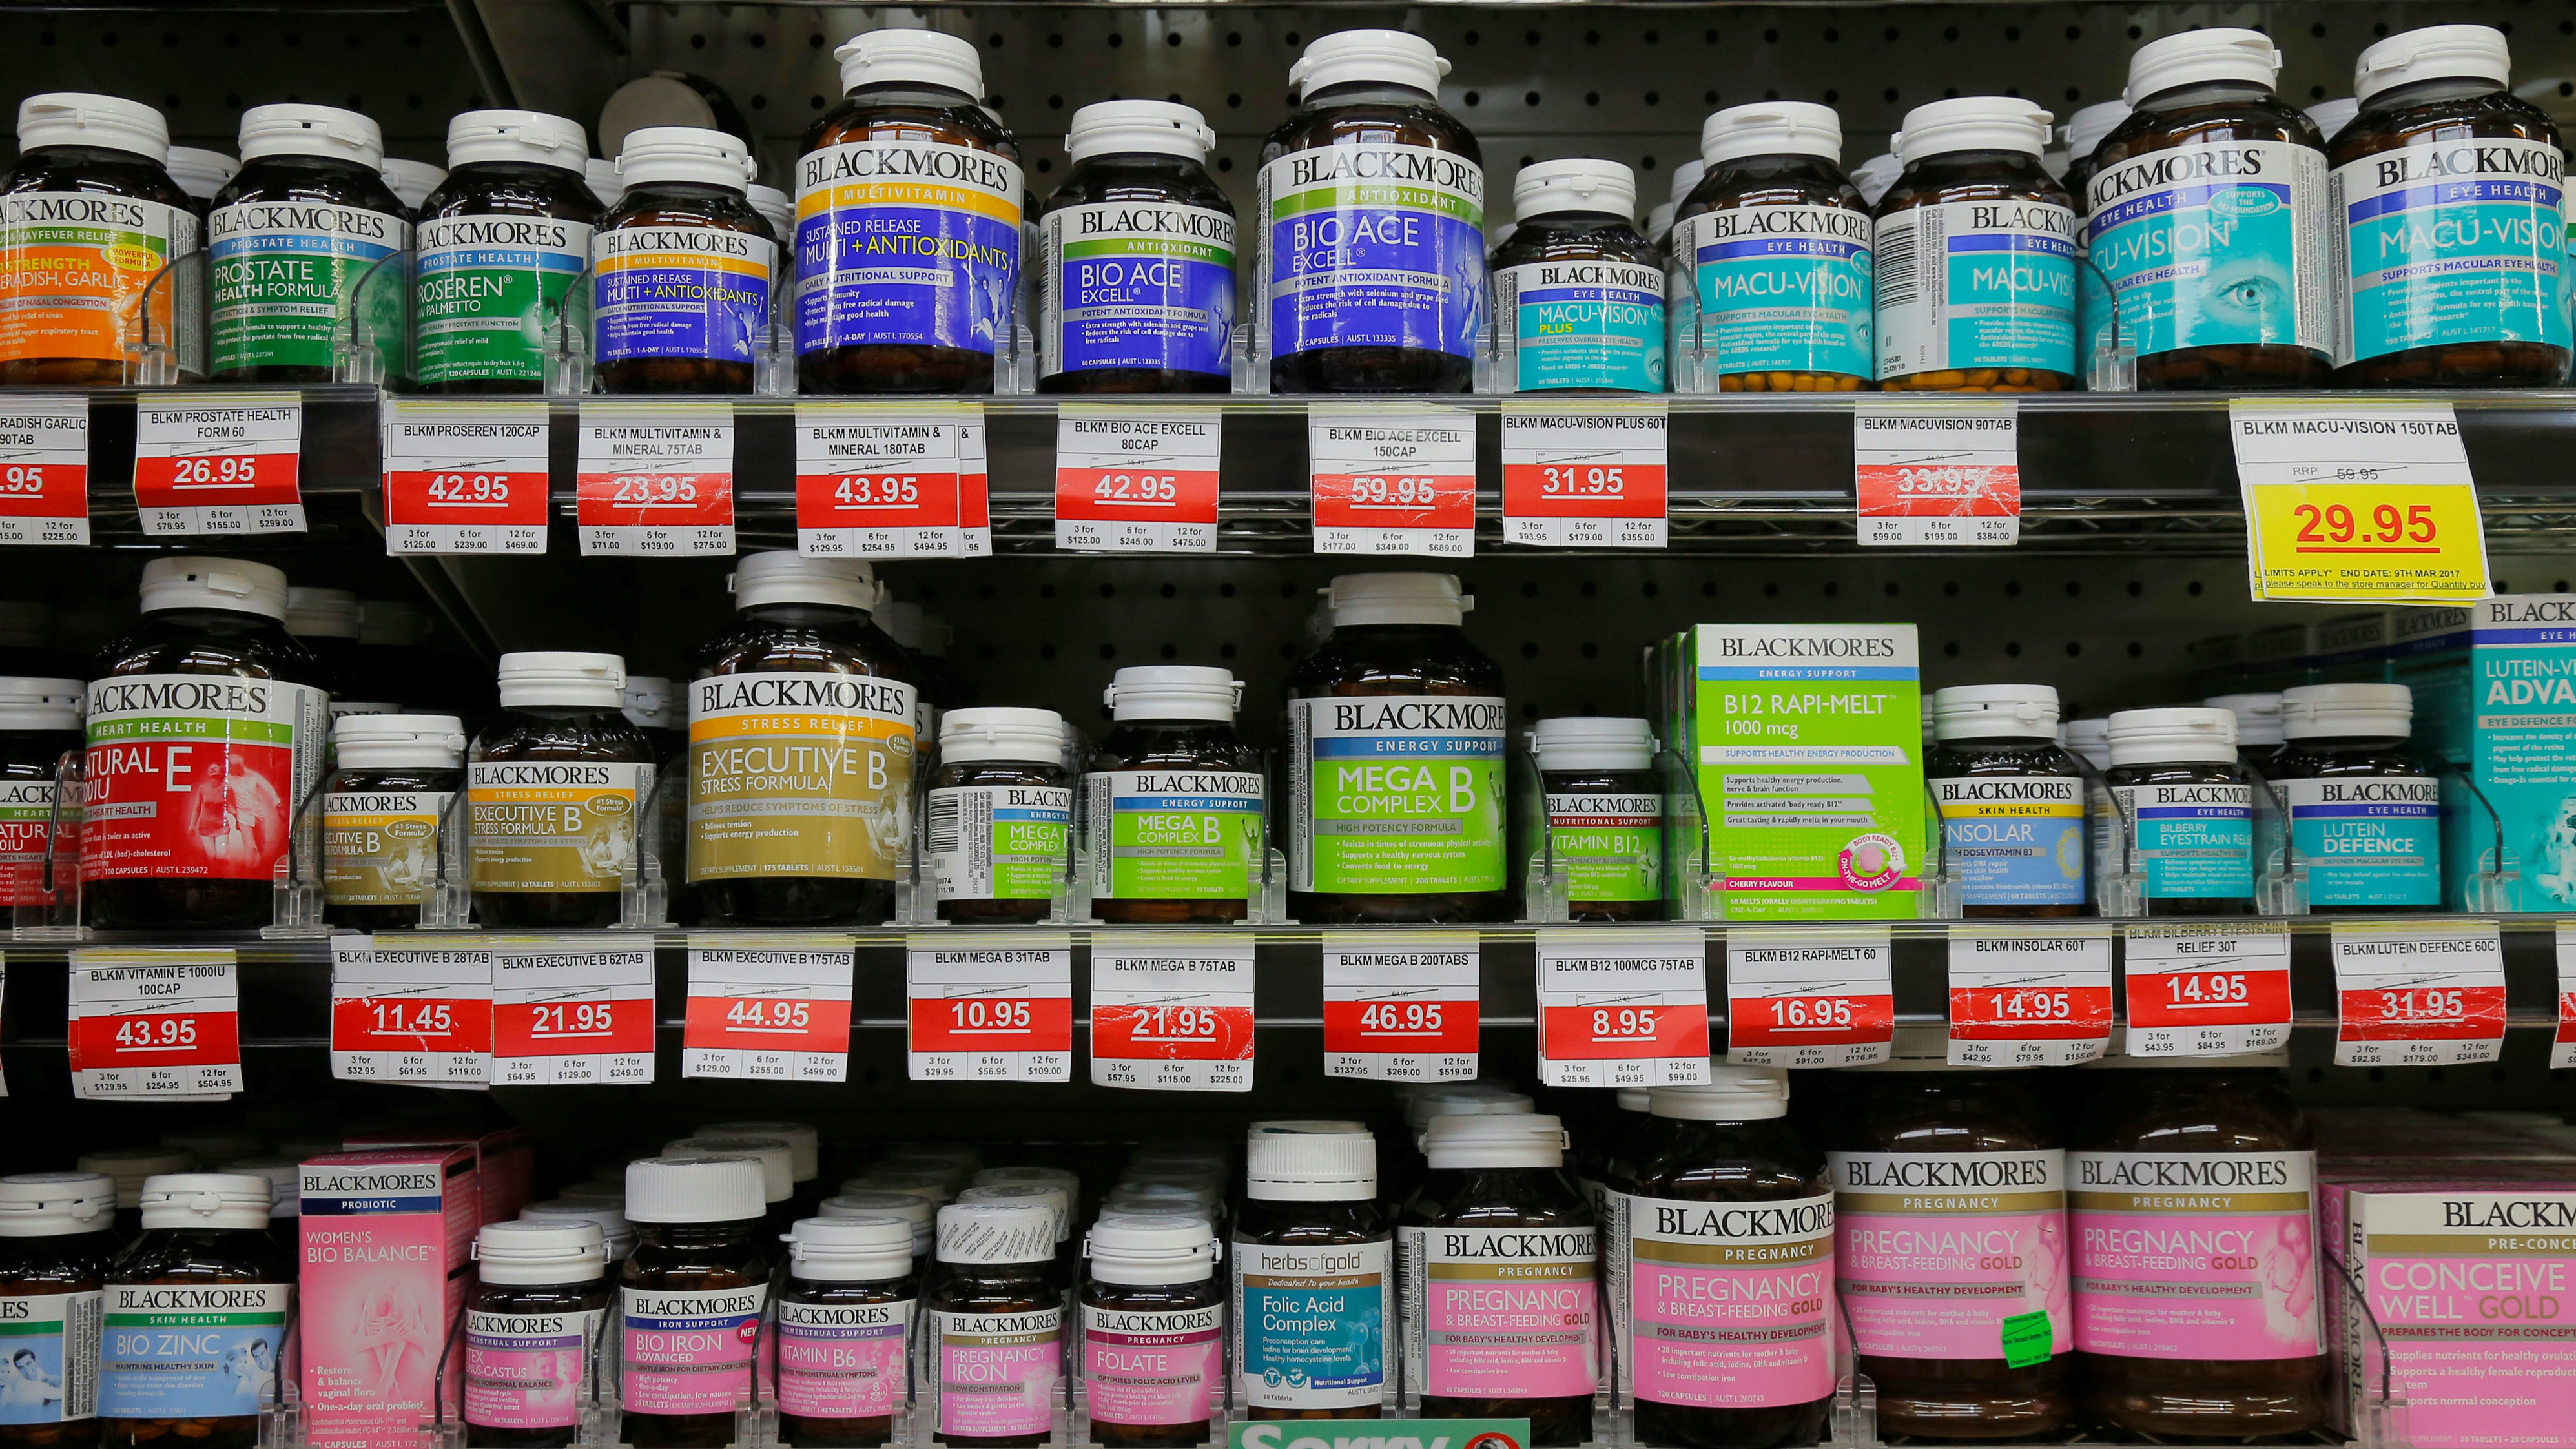 Blackmores Brand supplements stock shelves at a Mr Vitamins store in Sydney, Australia, March 9, 2017. Picture taken March 9, 2017.